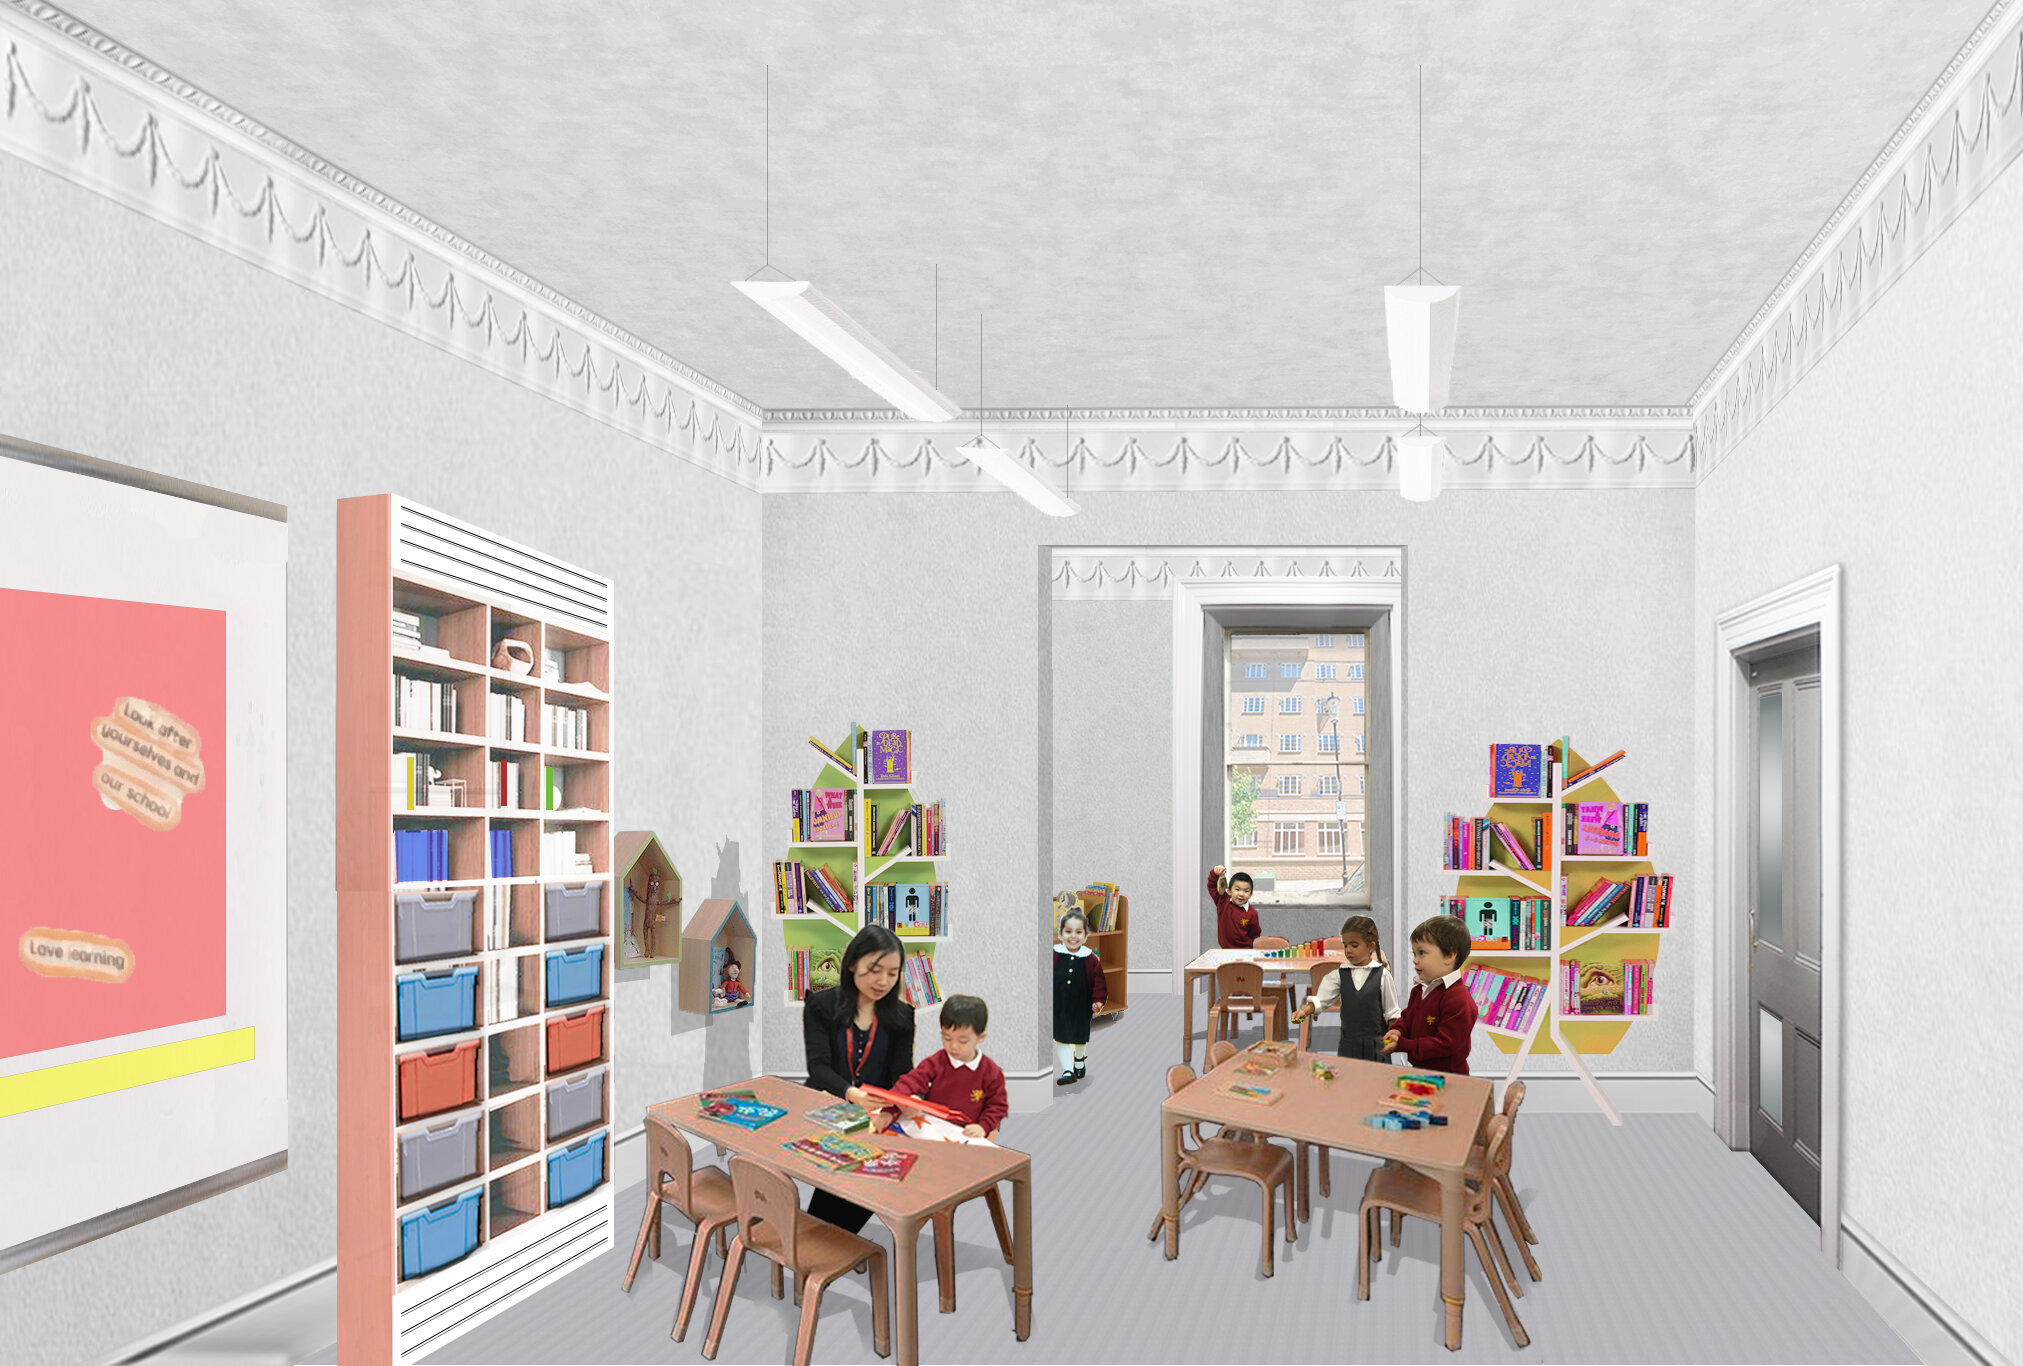 17015_Proposed classroom view_op.1 with low and high level ventilation joinery unit covering window_DRAFT 27 08 19.jpg